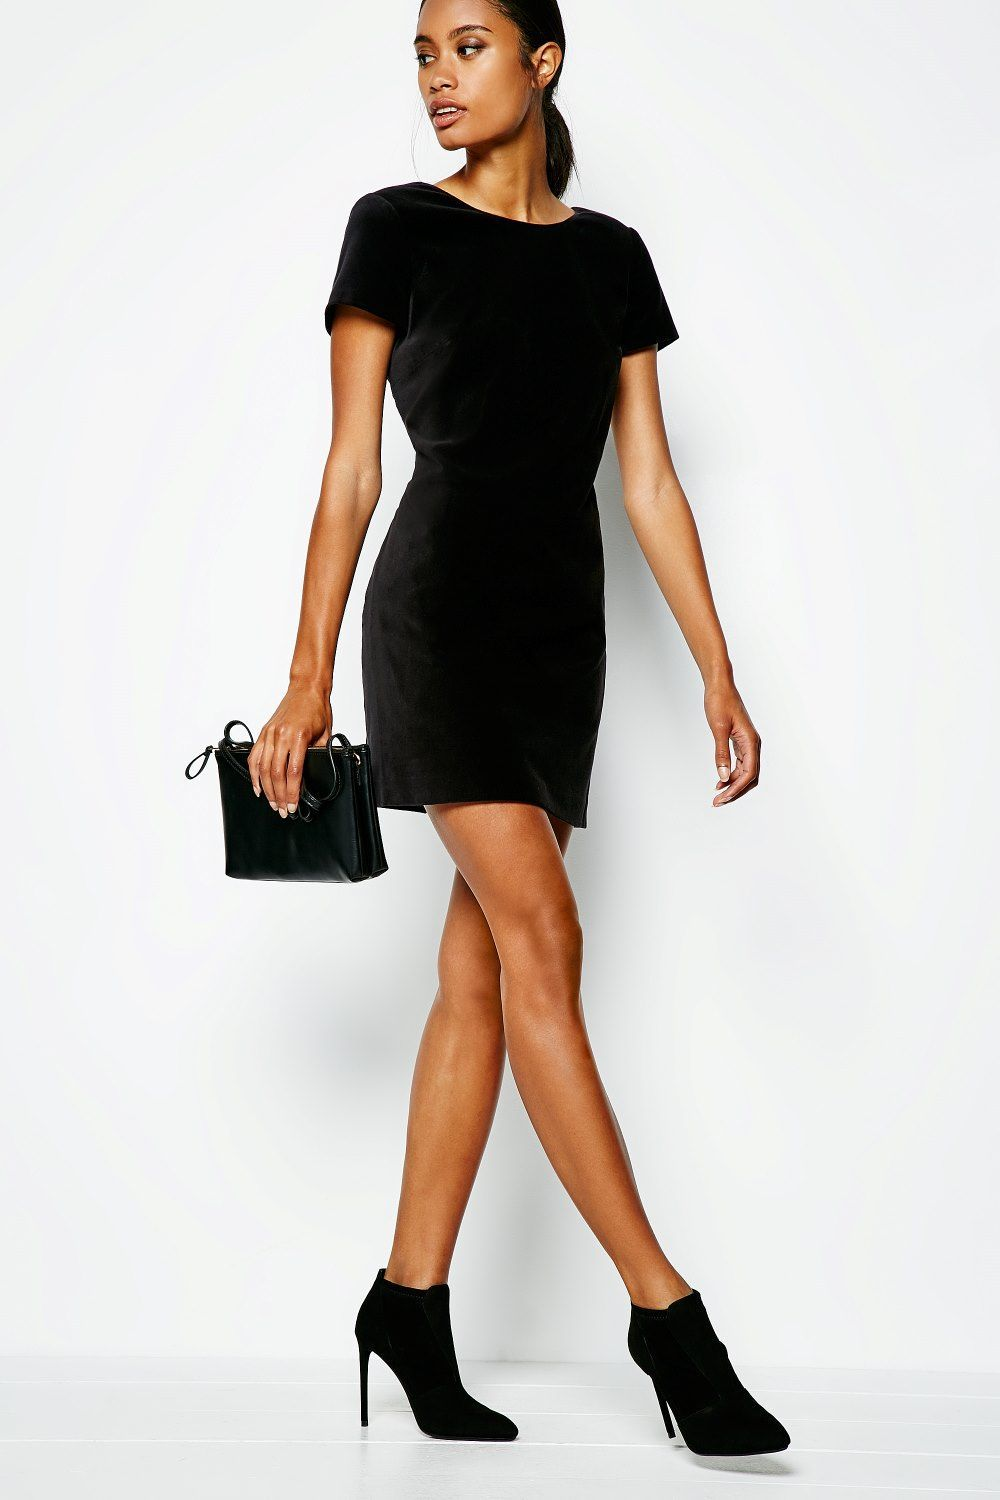 A Simple Black Velvet Shift Dress Looks Stunning With Simple Black Accessories To Amp Things Up Add Some Gold Jewelry Velvet Shift Dress Shift Dress Fashion [ 1500 x 1000 Pixel ]